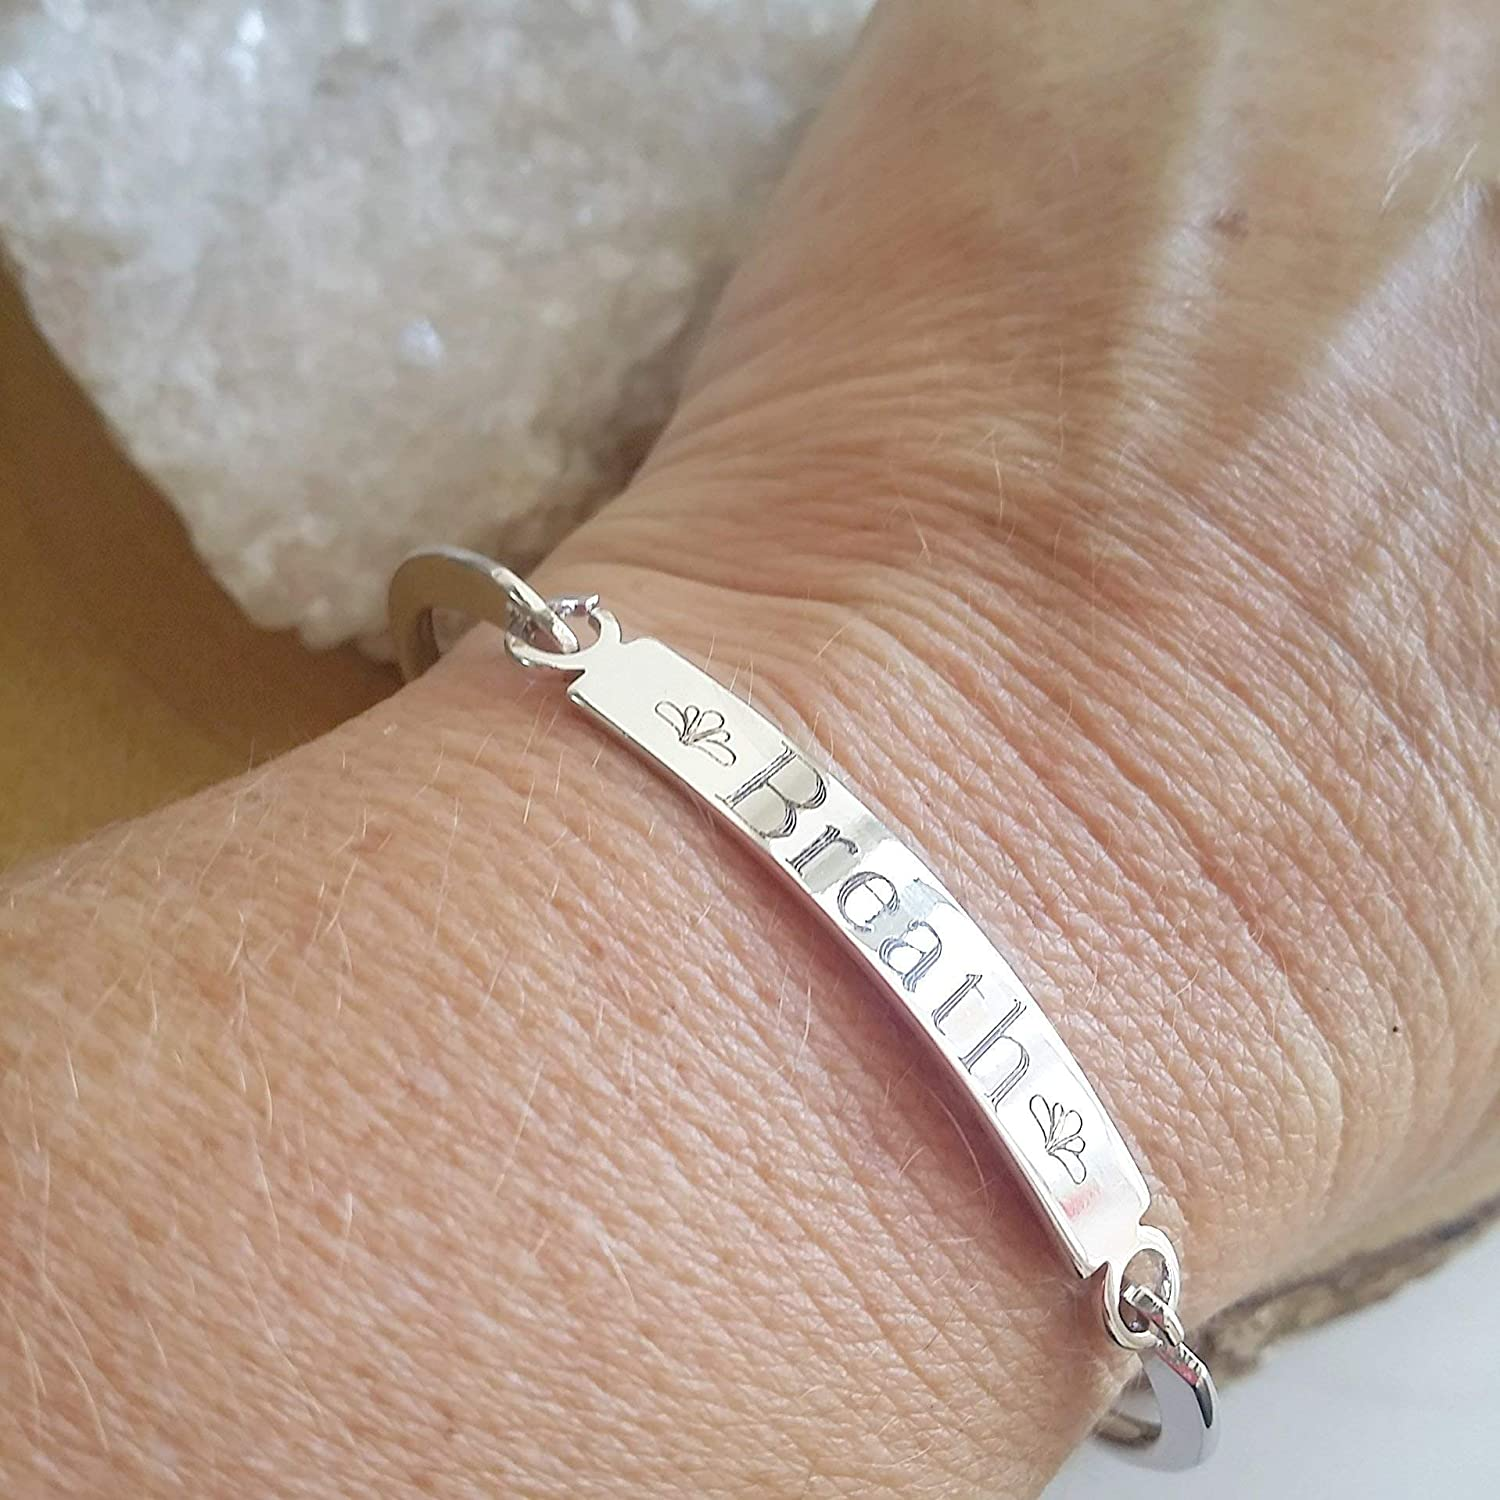 Personalized bracelet silver cuff bracelet, handwriting jewelry handwriting bracelet quote bracelet personalized quote memorial gift